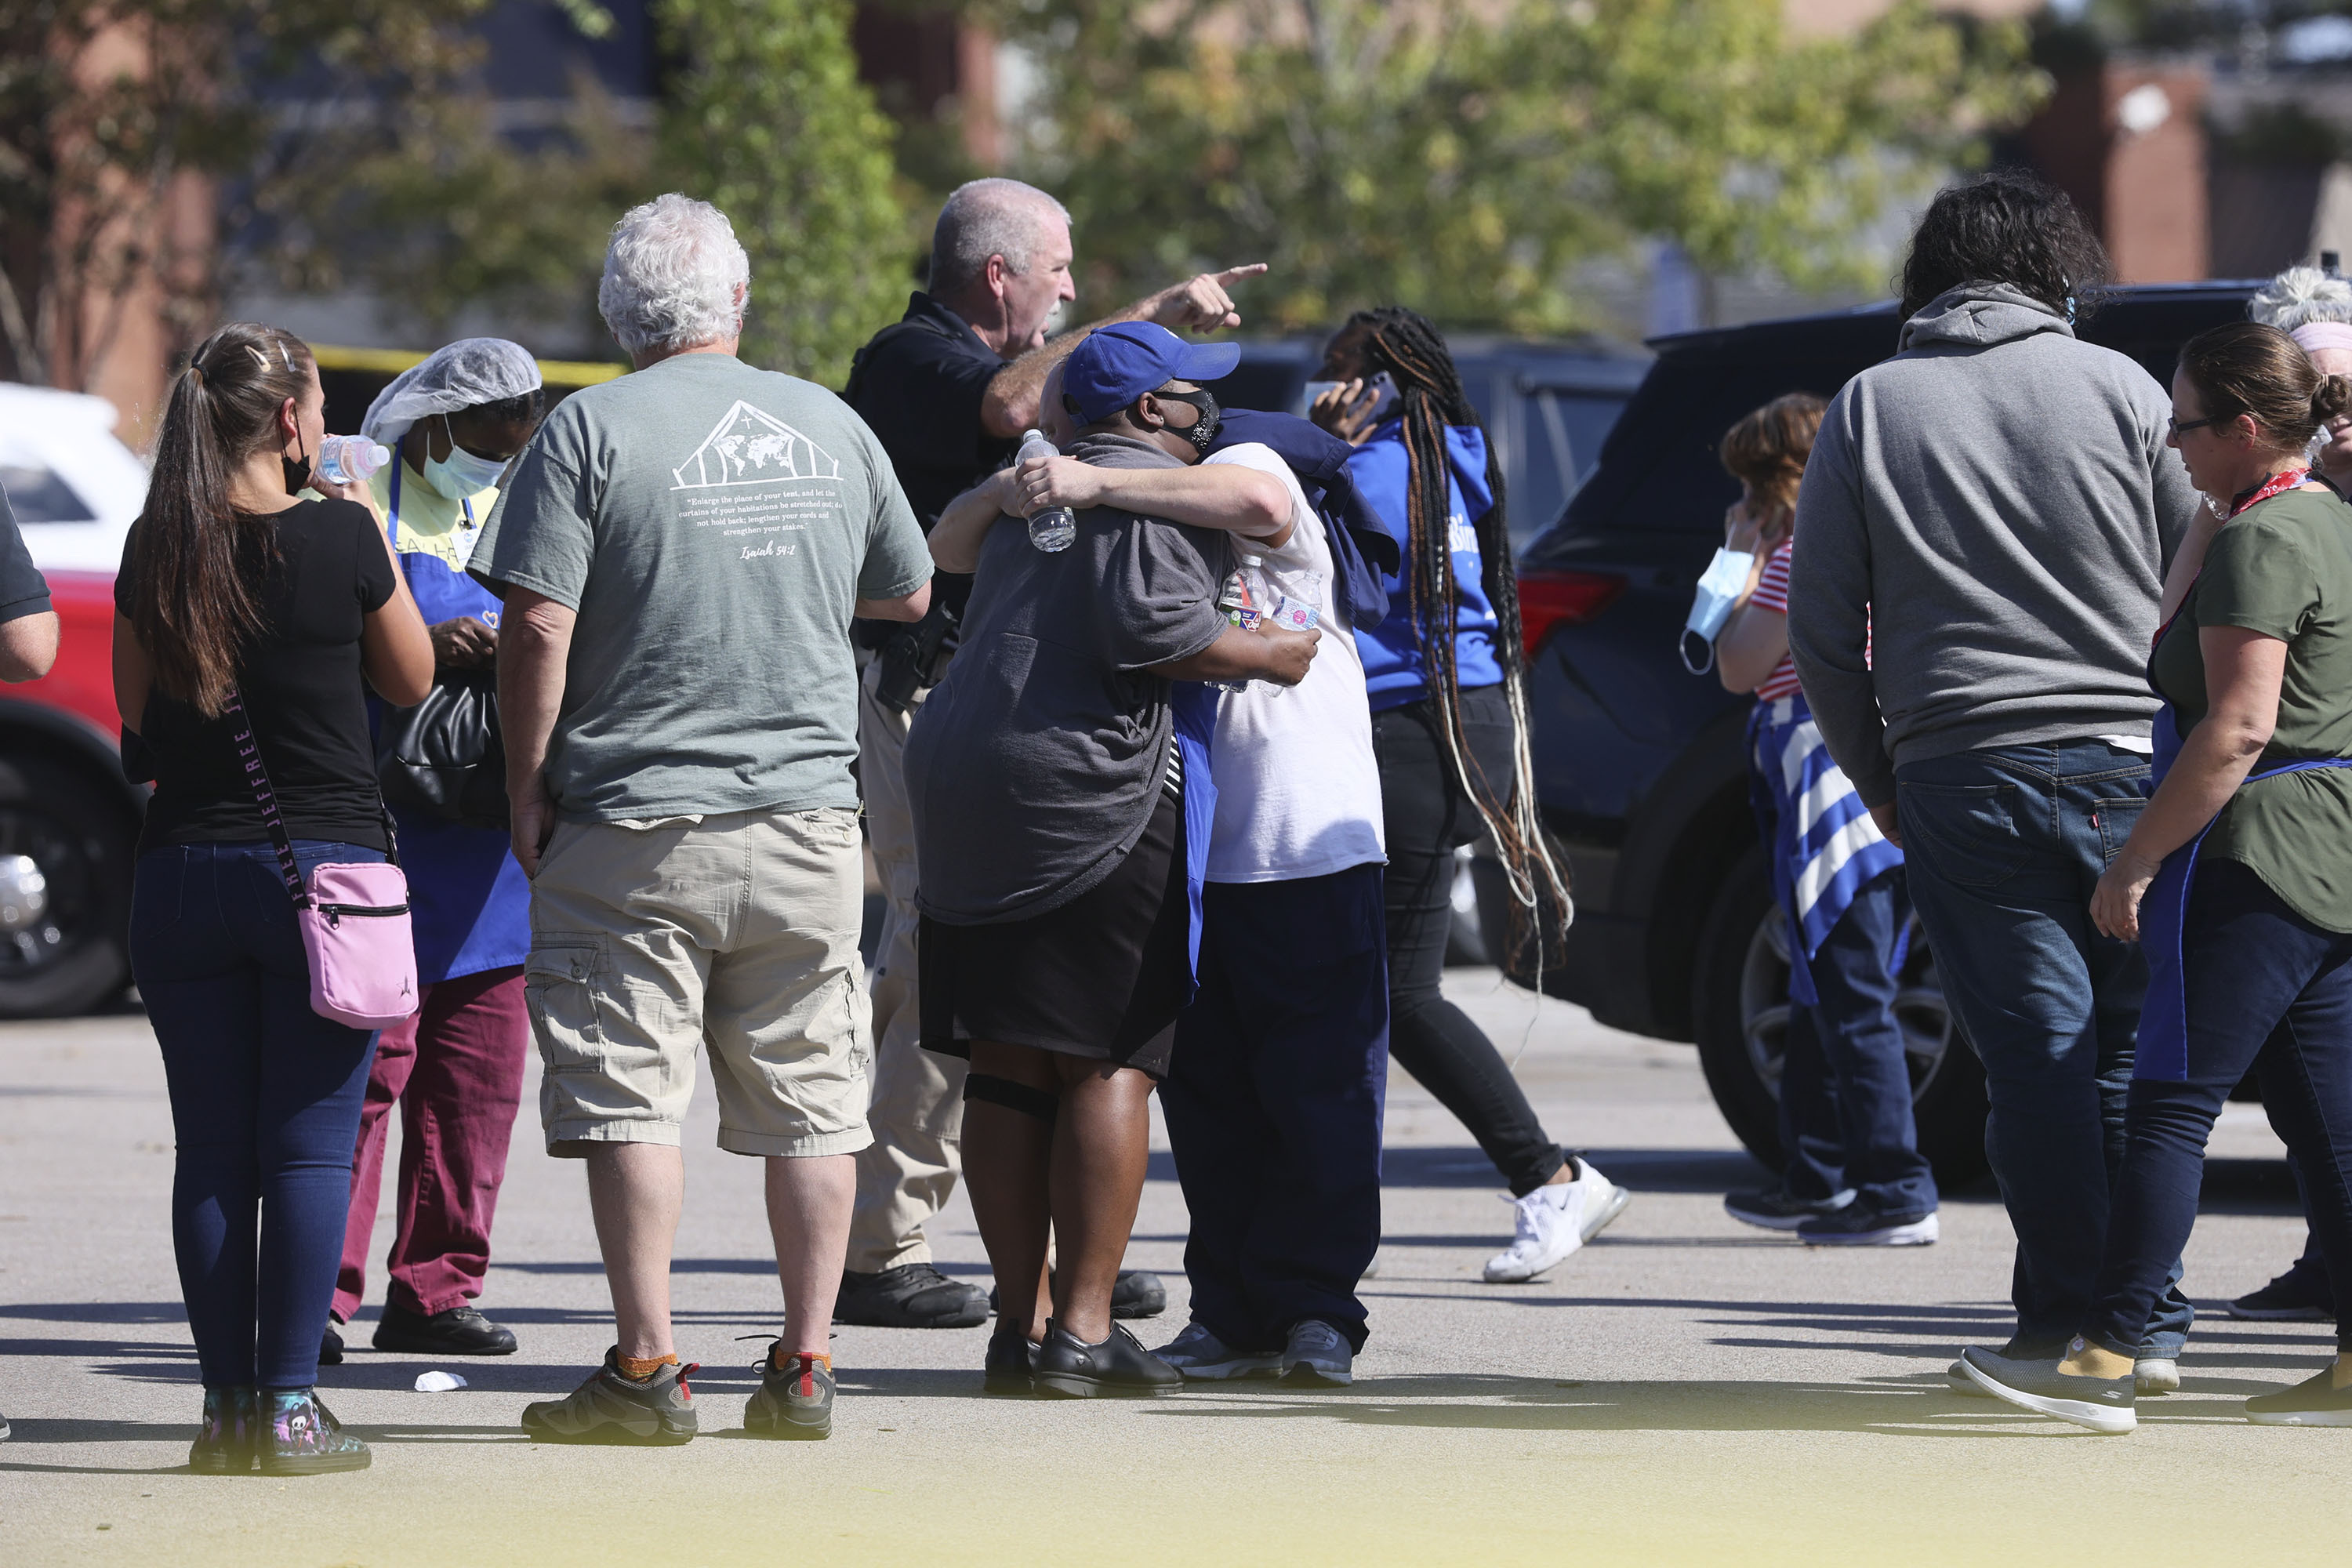 People embrace as police respond to the scene of a shooting at a Kroger's grocery store in Collierville, Tenn., on Thursday, Sept. 23, 2021.